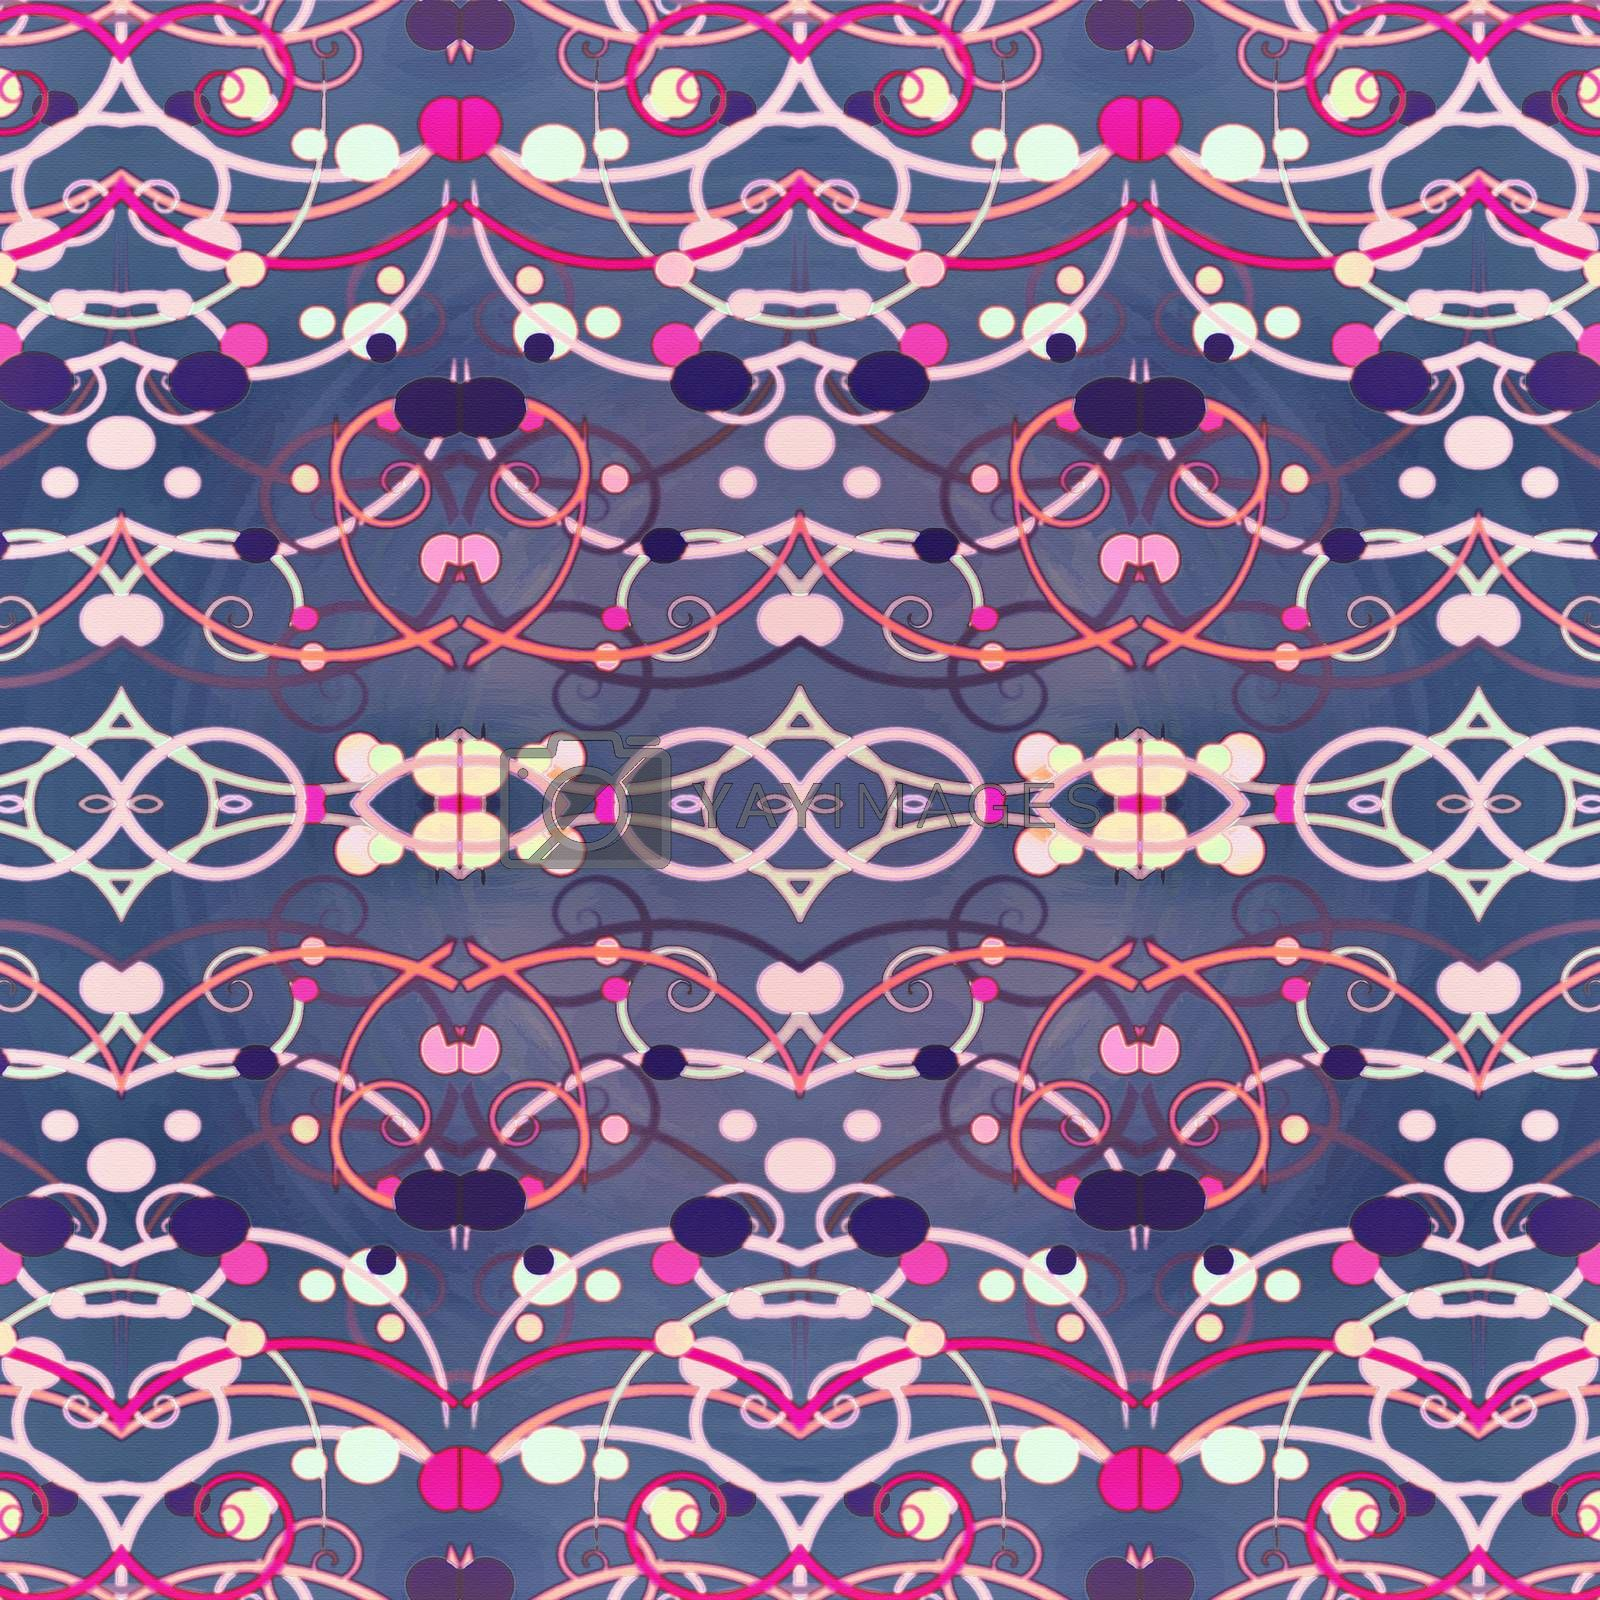 Royalty free image of Abstract Deco Background by DanFLCreative